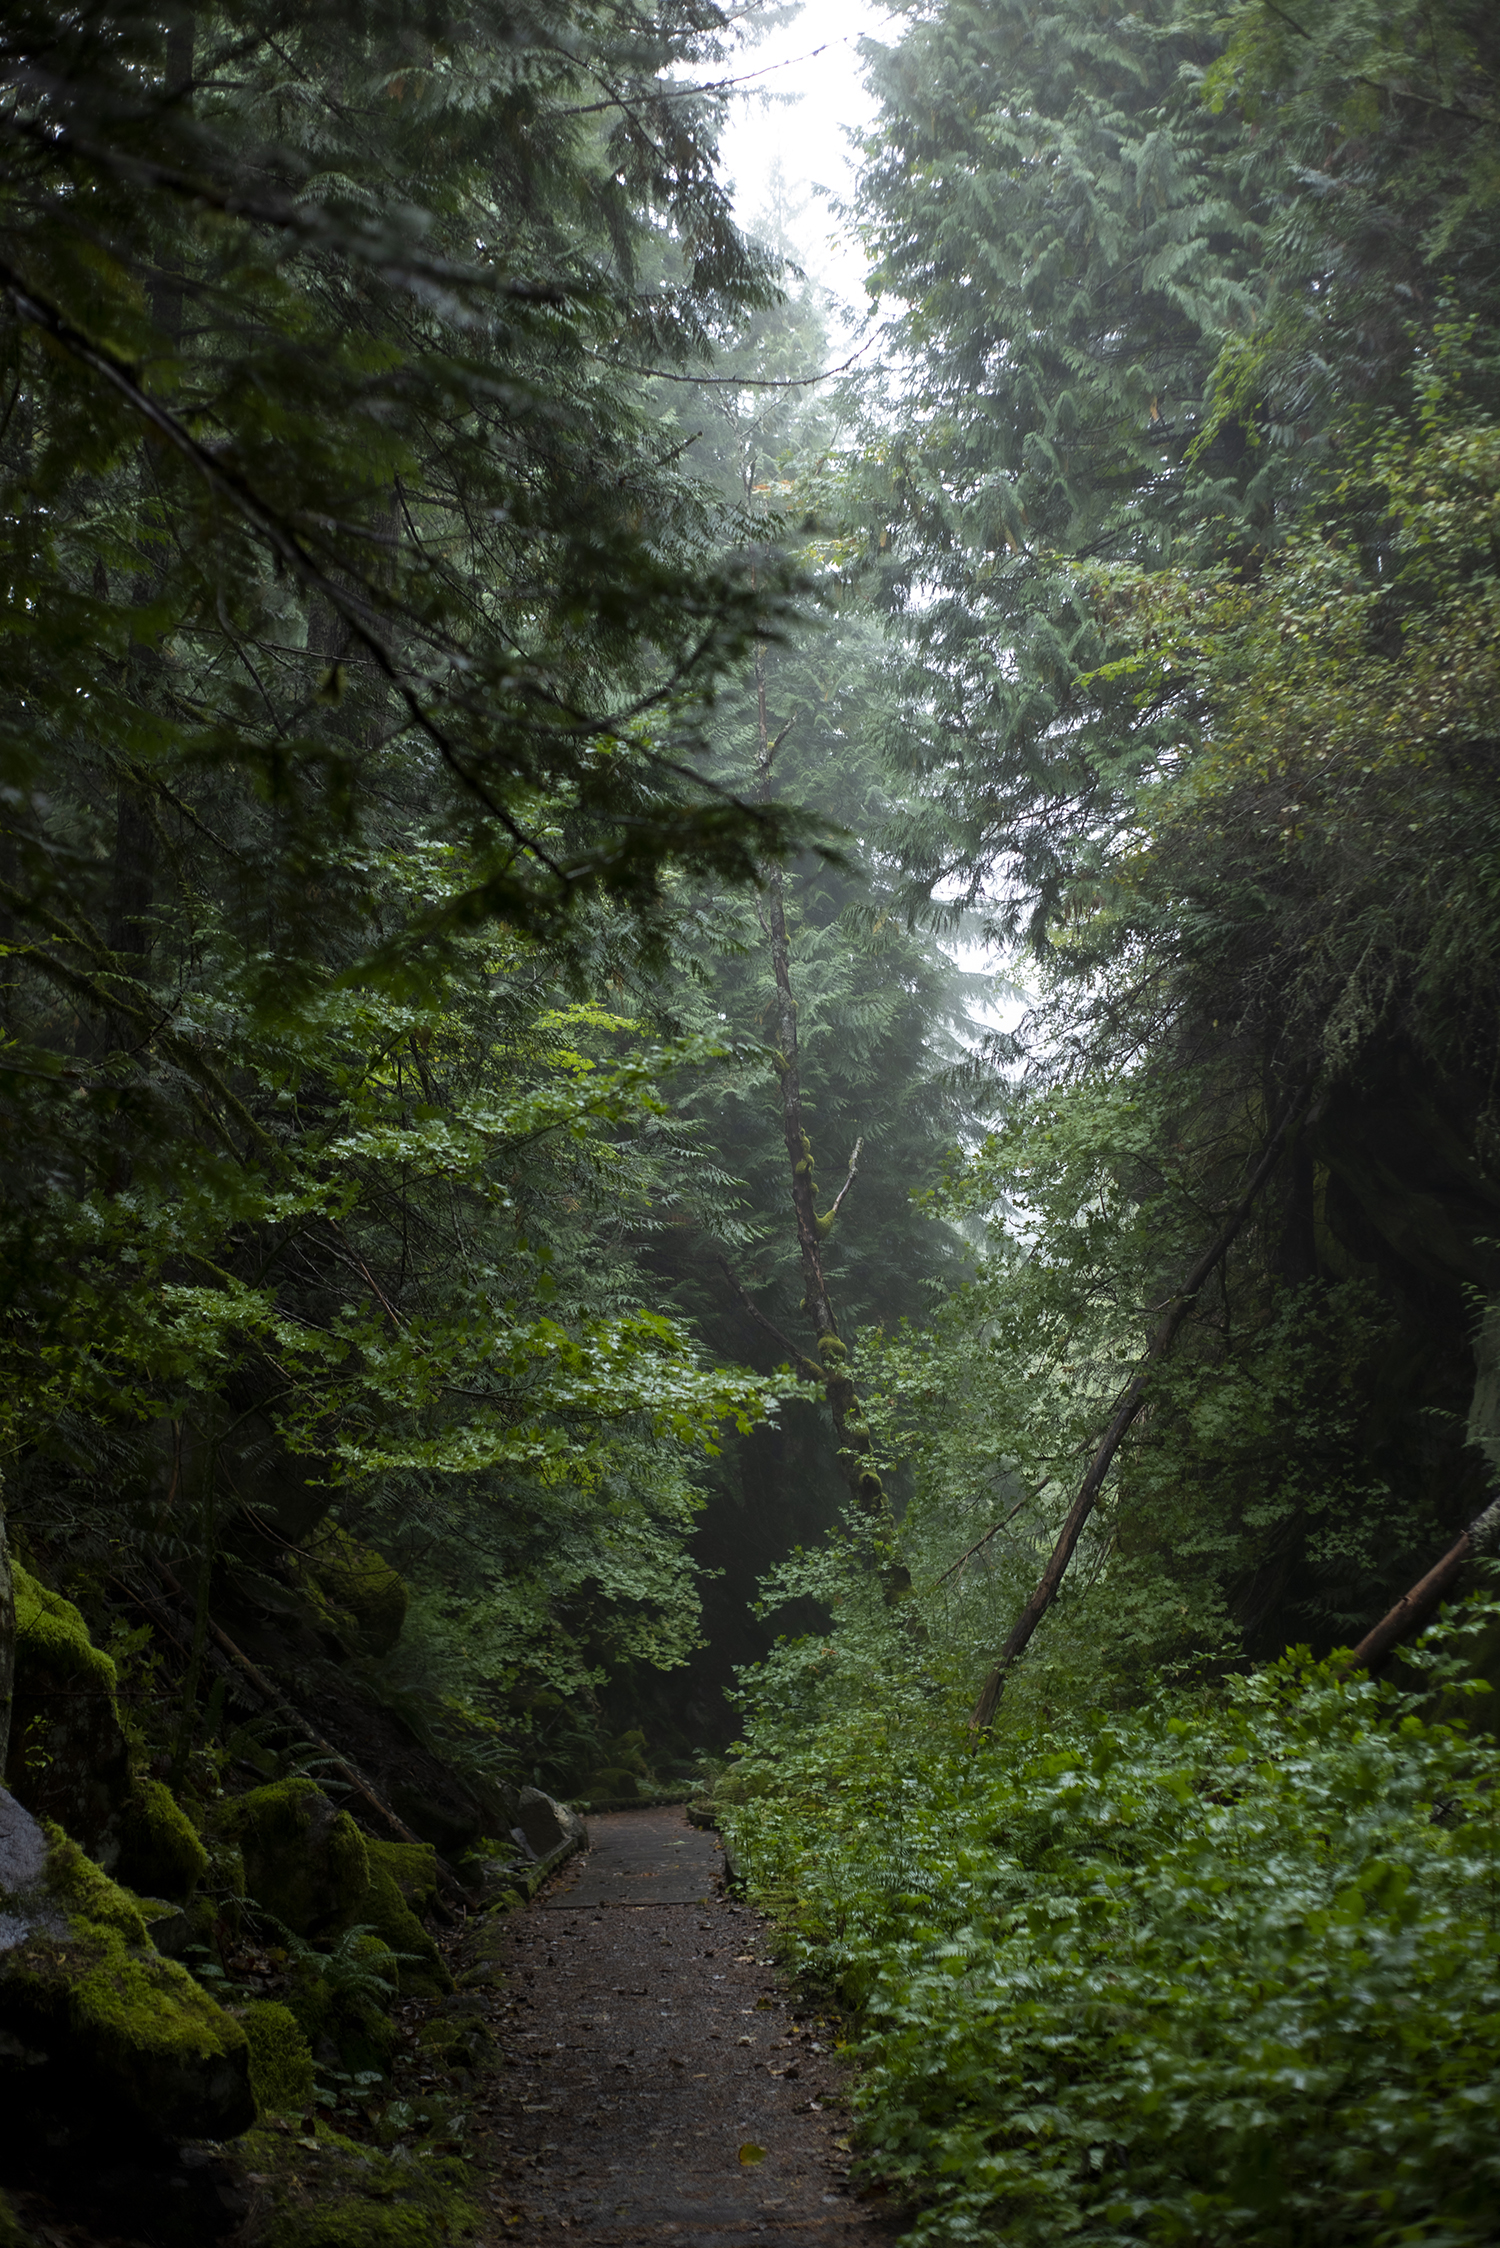 The new Cascade Tunnel was built and later opened in 1929, leaving the old remaining tunnels completely abandoned. Still in use today, the passageway is busy with trains rumbling through the mountain range filling the foggy air with an eerie reminder of what used to be.{ }(Image: Rachael Jones / Seattle Refined)